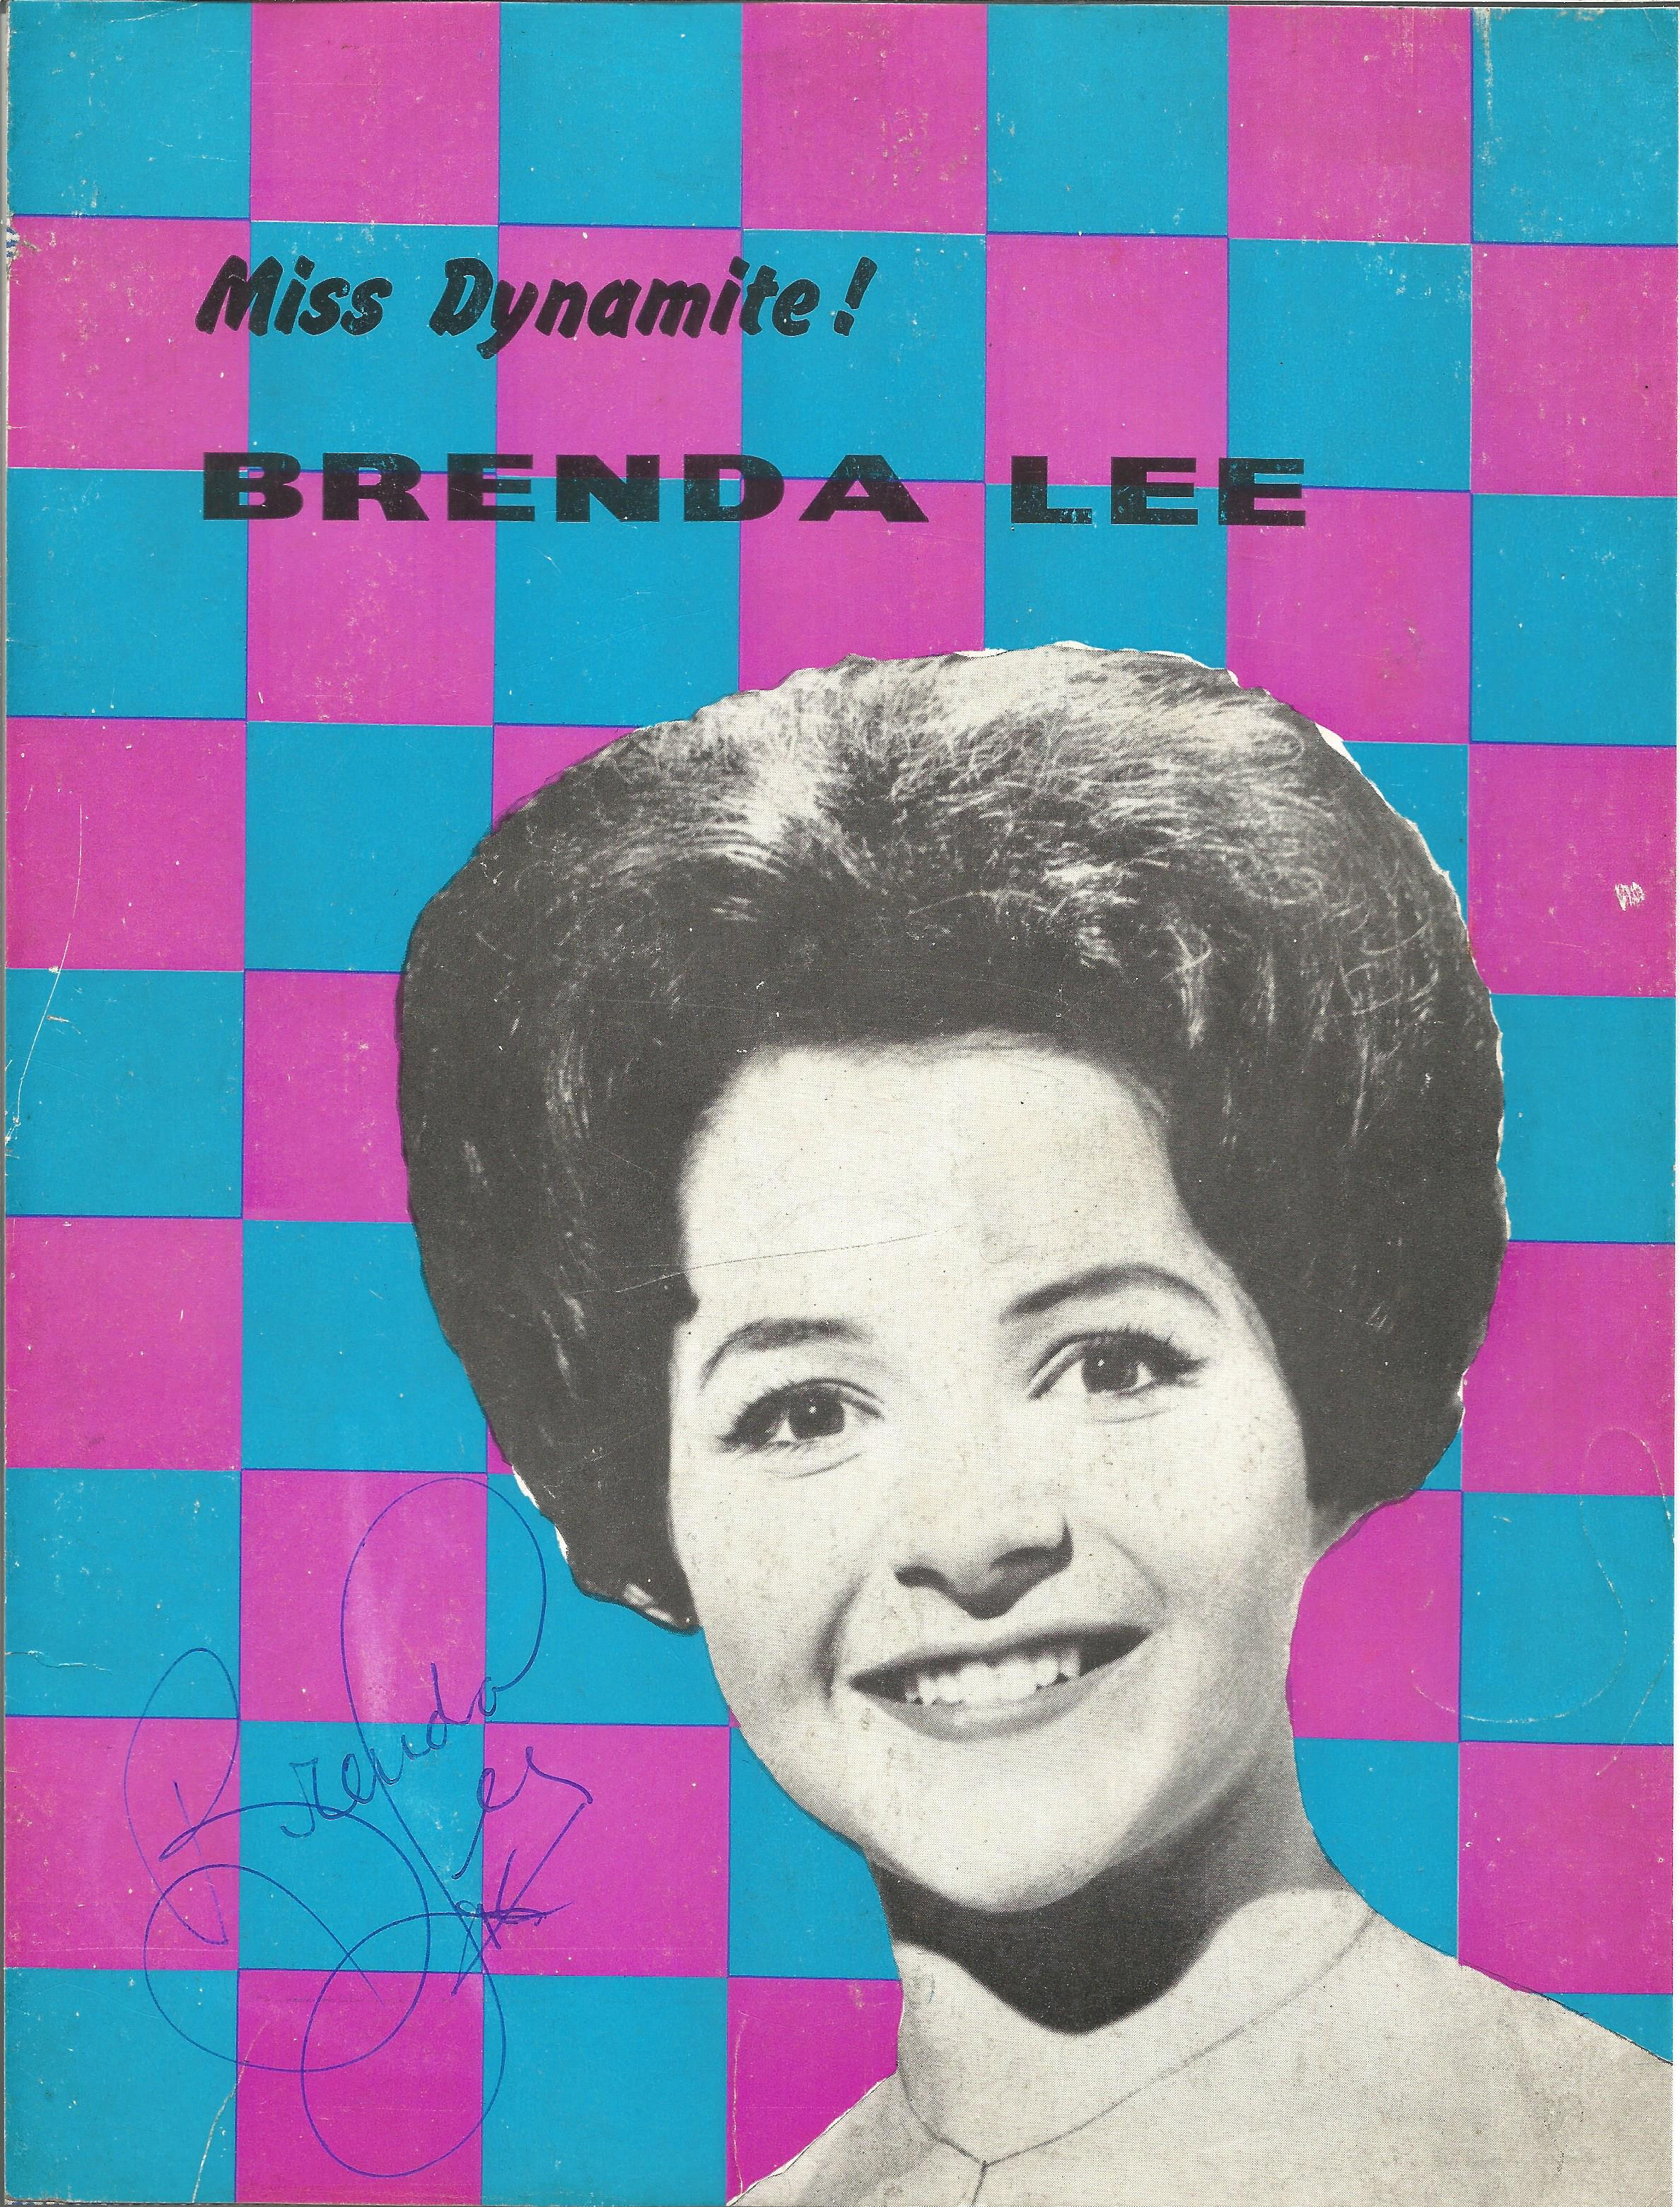 Brenda Lee Singer Signed Vintage 8x10 Picture. Good Condition. All autographs are genuine hand